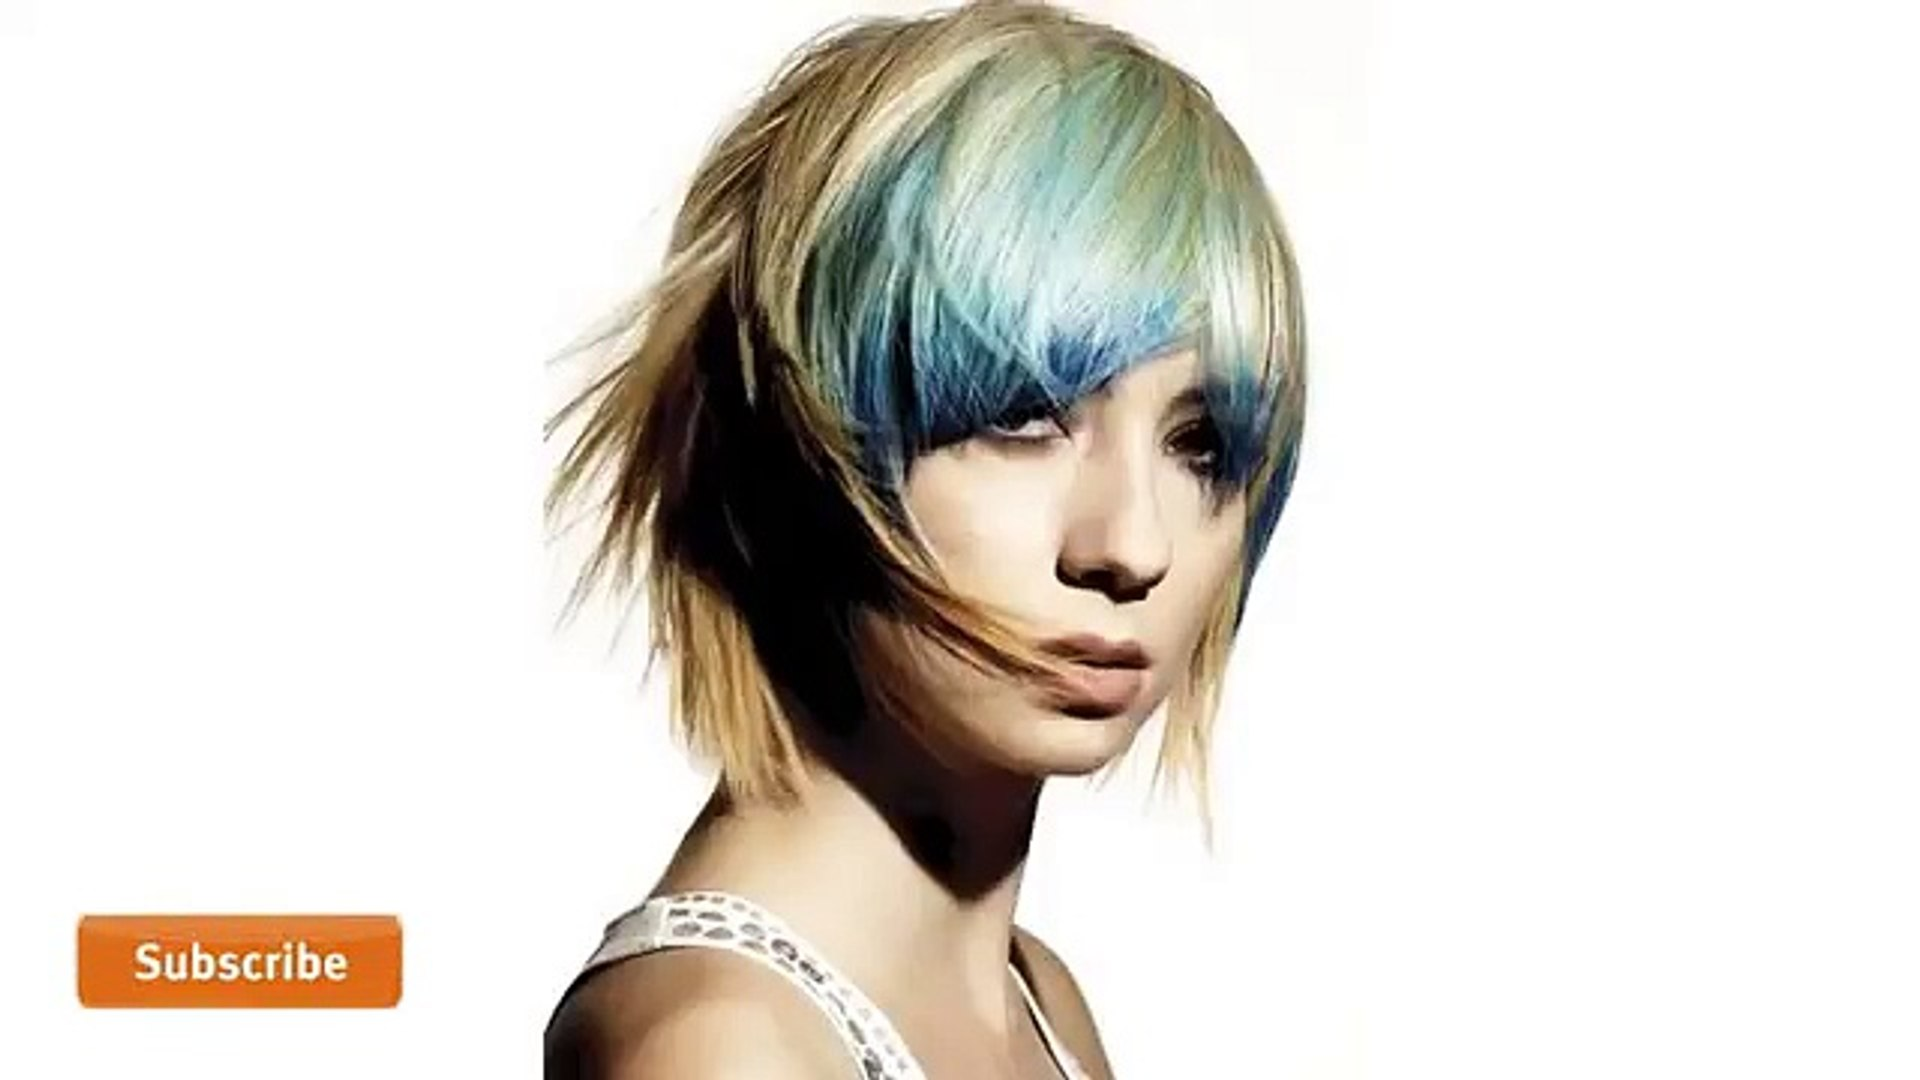 Punk Girl Hairstyles - Cute and Stylish Hairstyles - Video Dailymotion